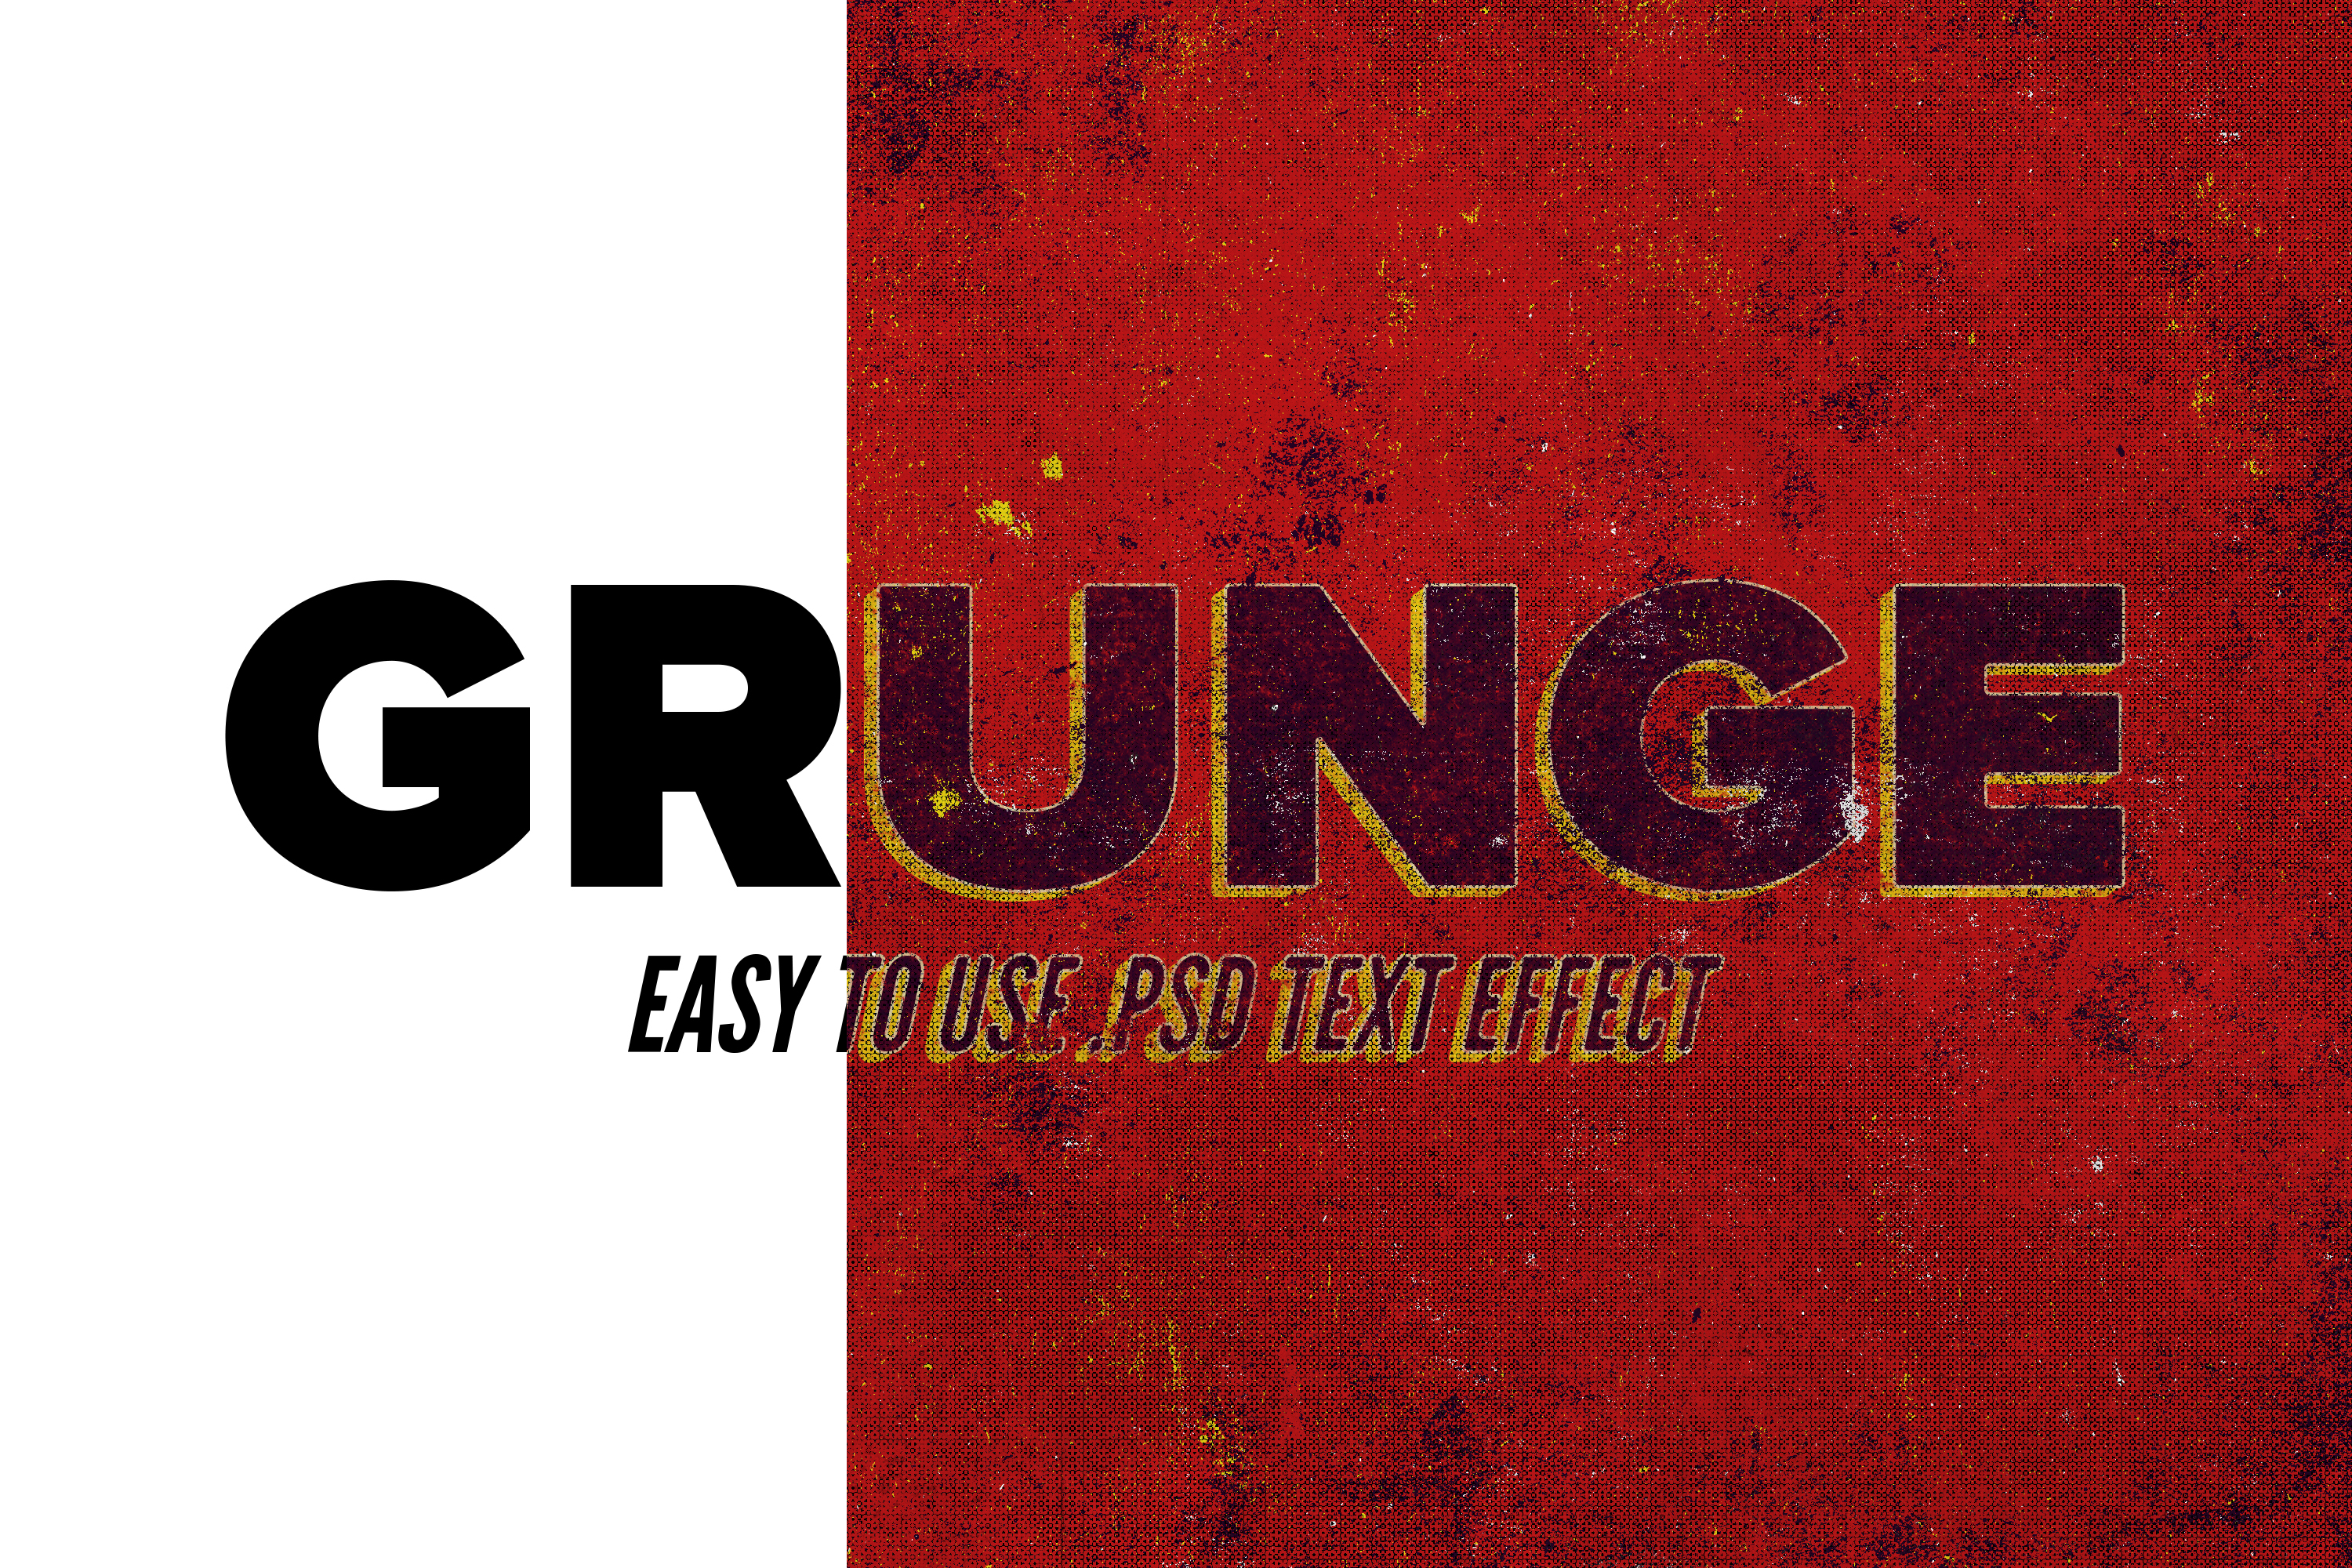 Grunge - Vintage Text Effect example image 2